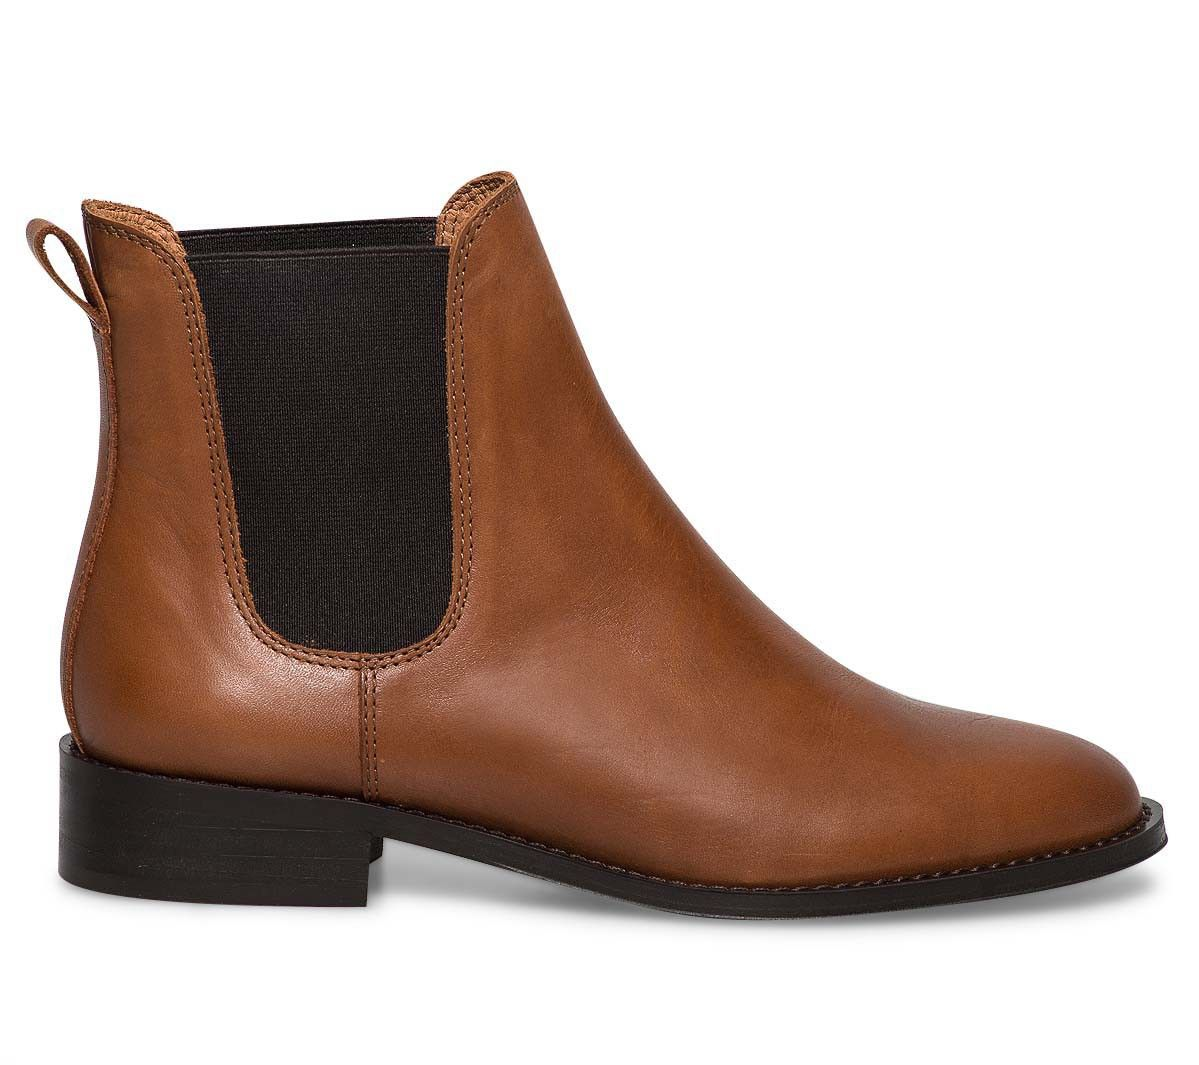 chelsea boots camel - boots / bottines - femme | ○ shoes